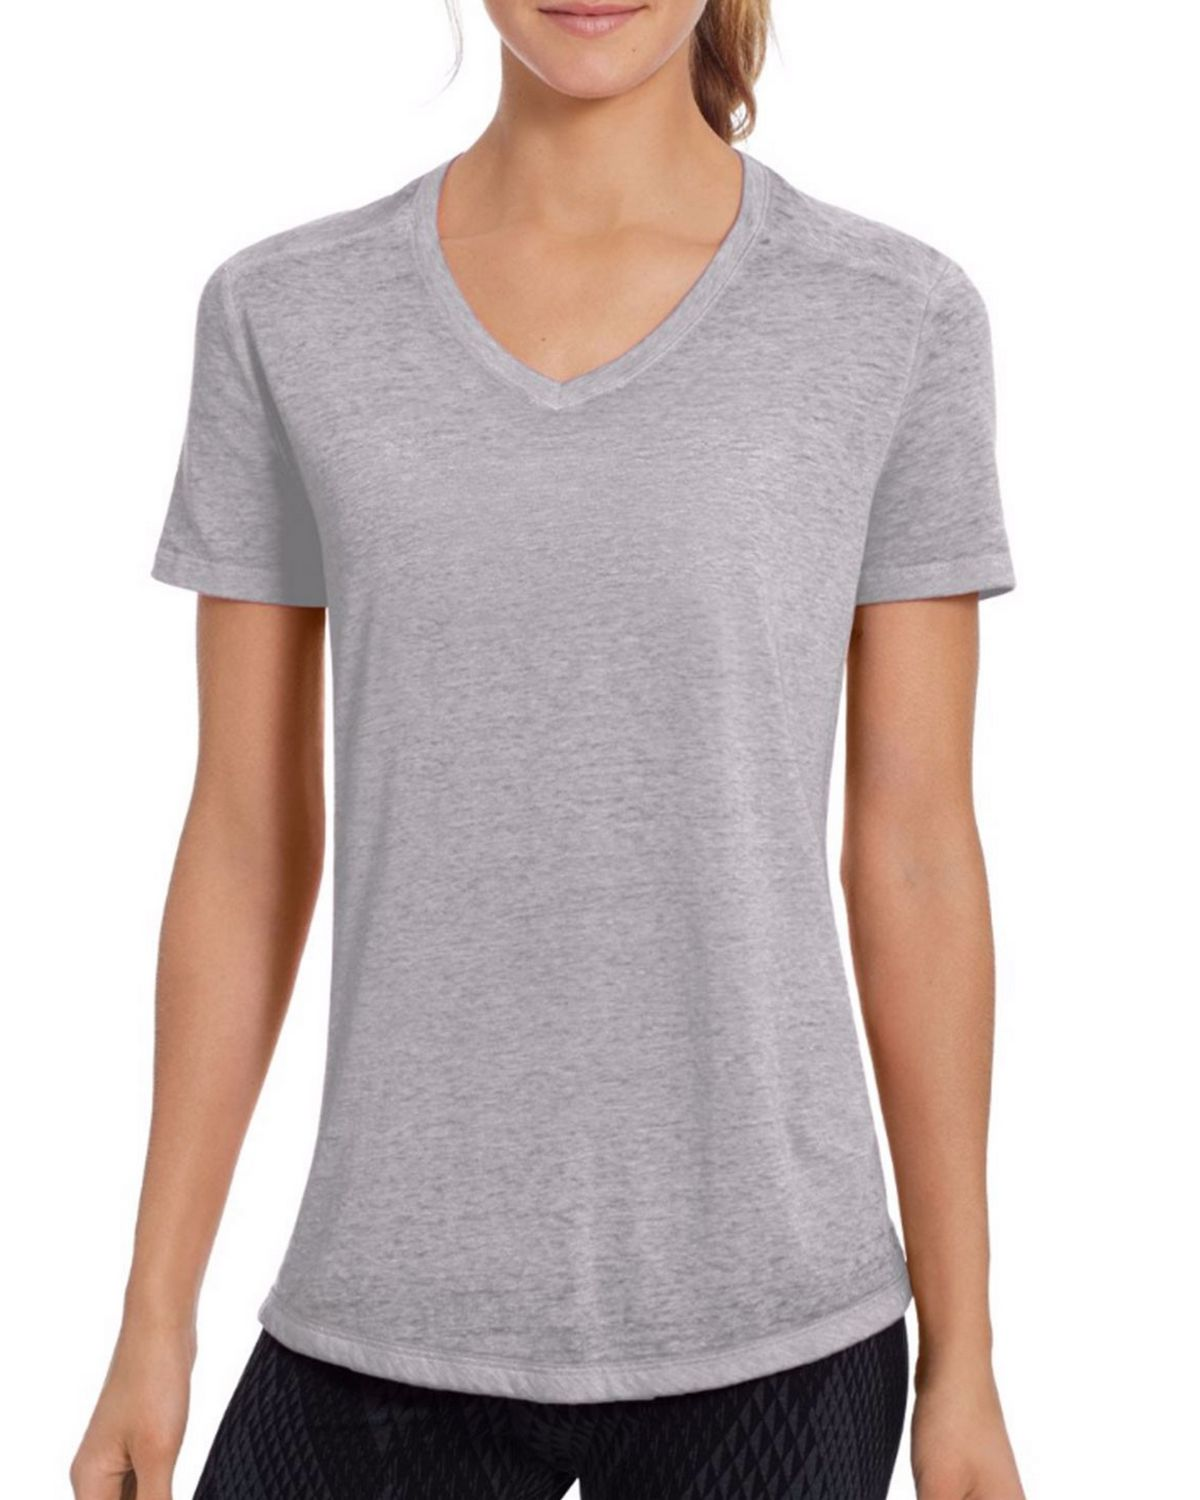 Champion W1272 Womens Boyfriend Tee - Oxford Grey Heather - M W1272